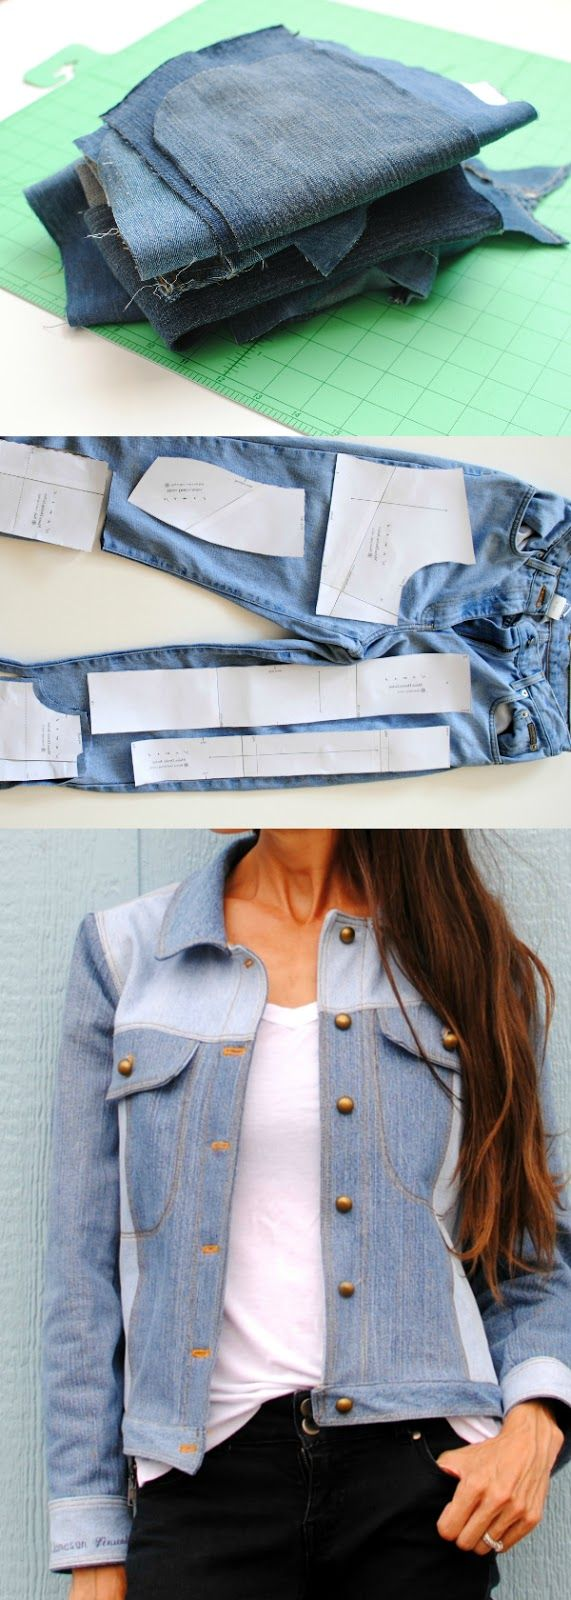 Upcycled Denim Jacket from her kid's old jeans!